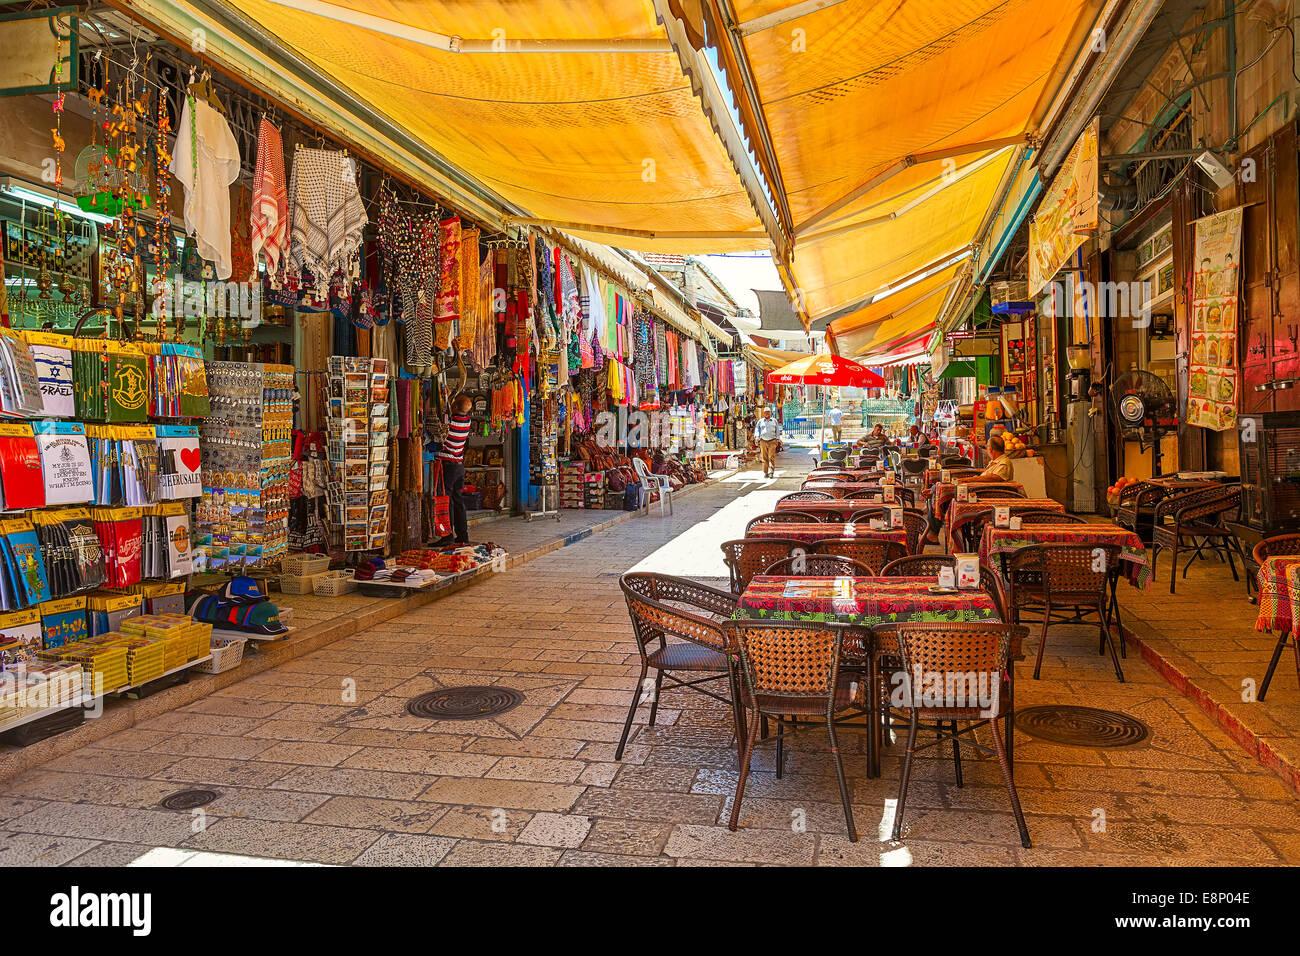 Bazaar in Old City of Jerusalem, Israel. - Stock Image